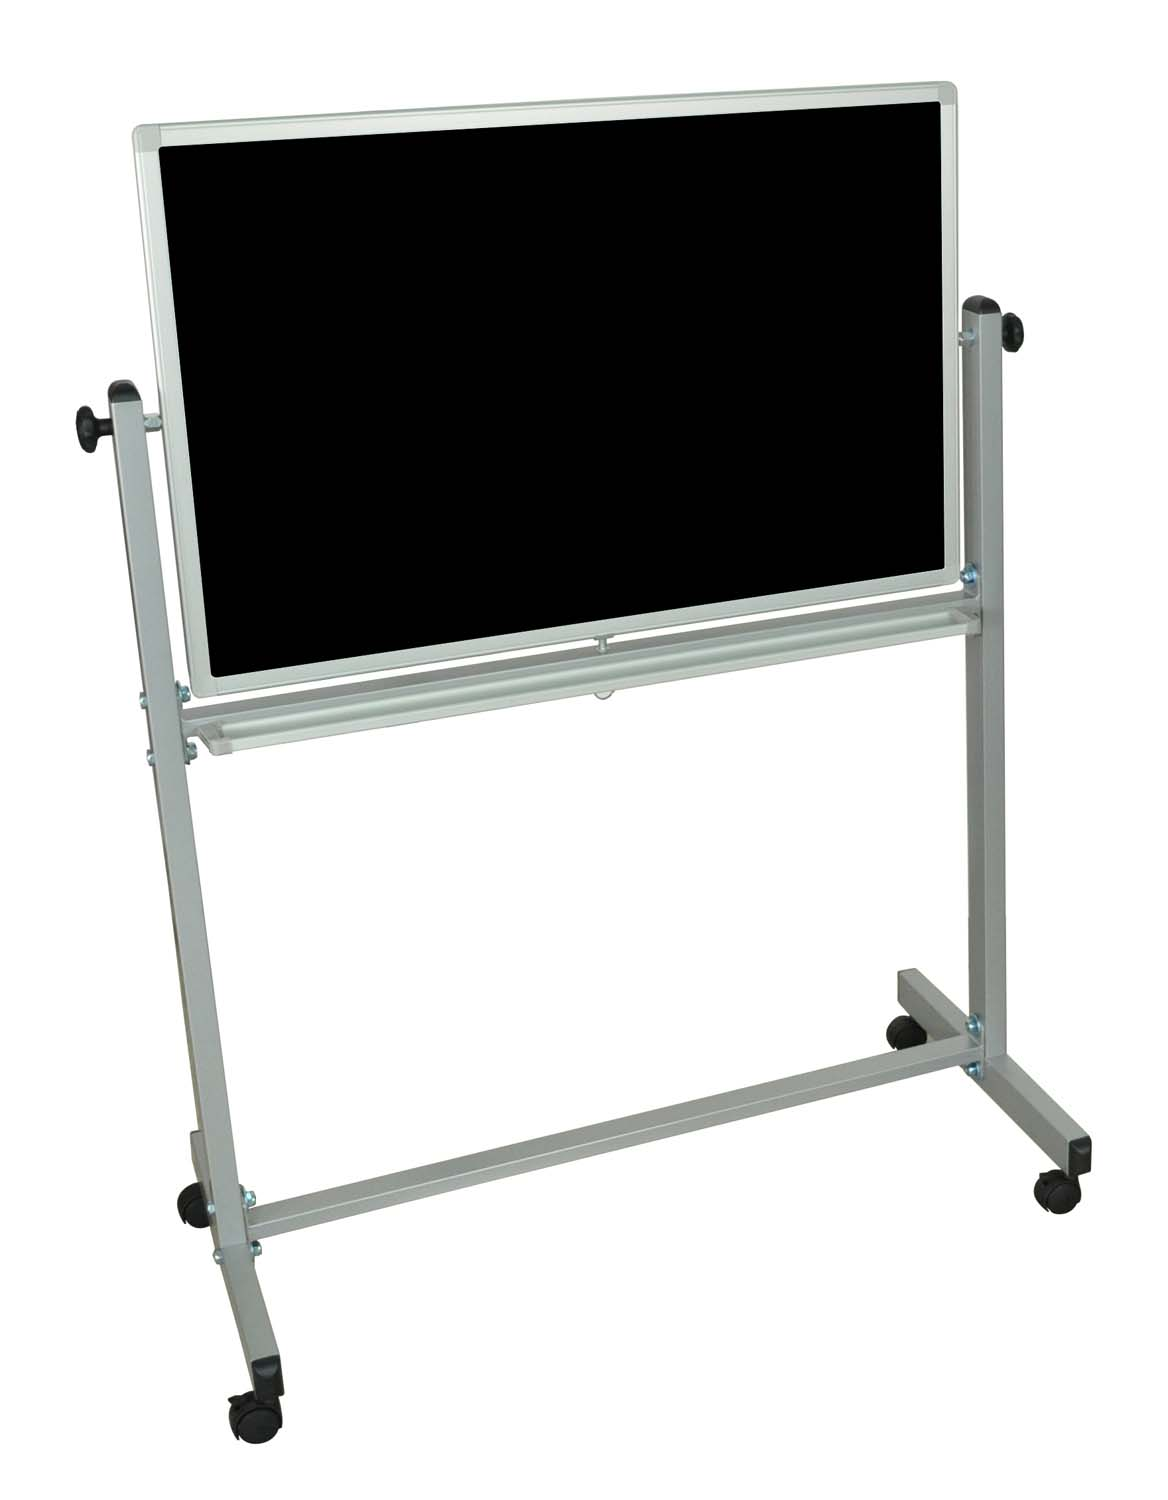 Offex Mobile Double Sided Magnetic Reversible Chalk Board / White Board 36